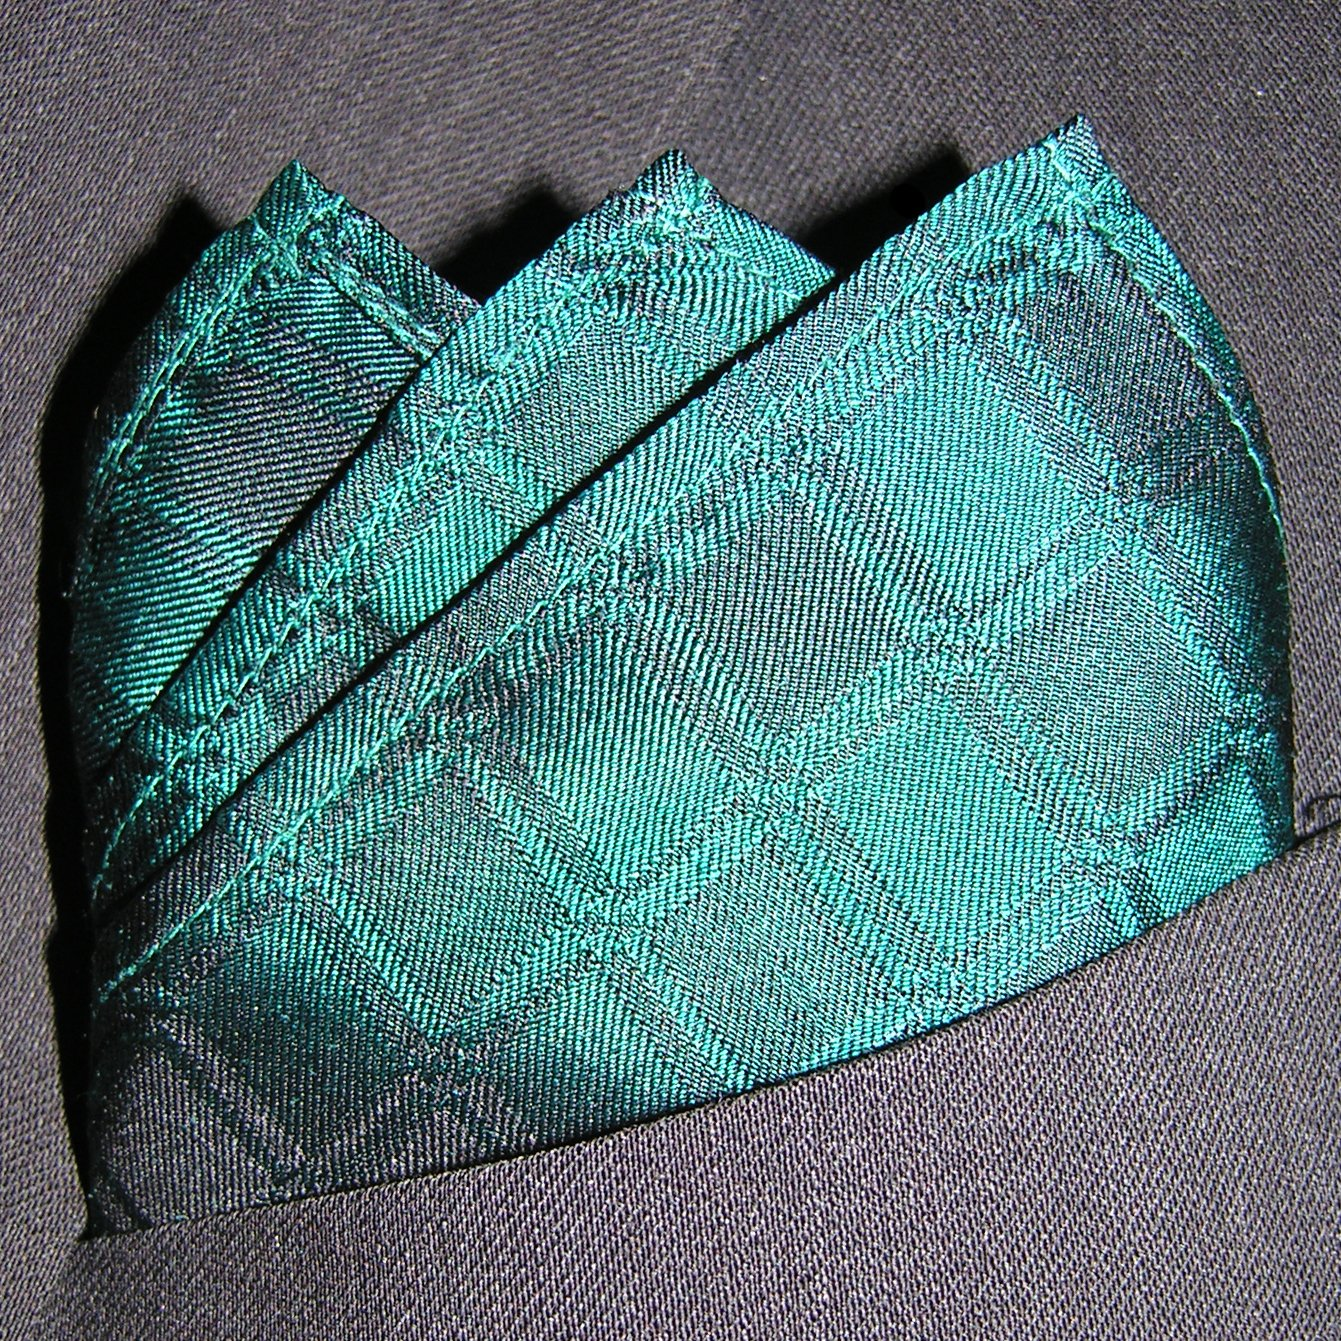 Full-Sized 16x16 Jade Squares Silk Pocket Square